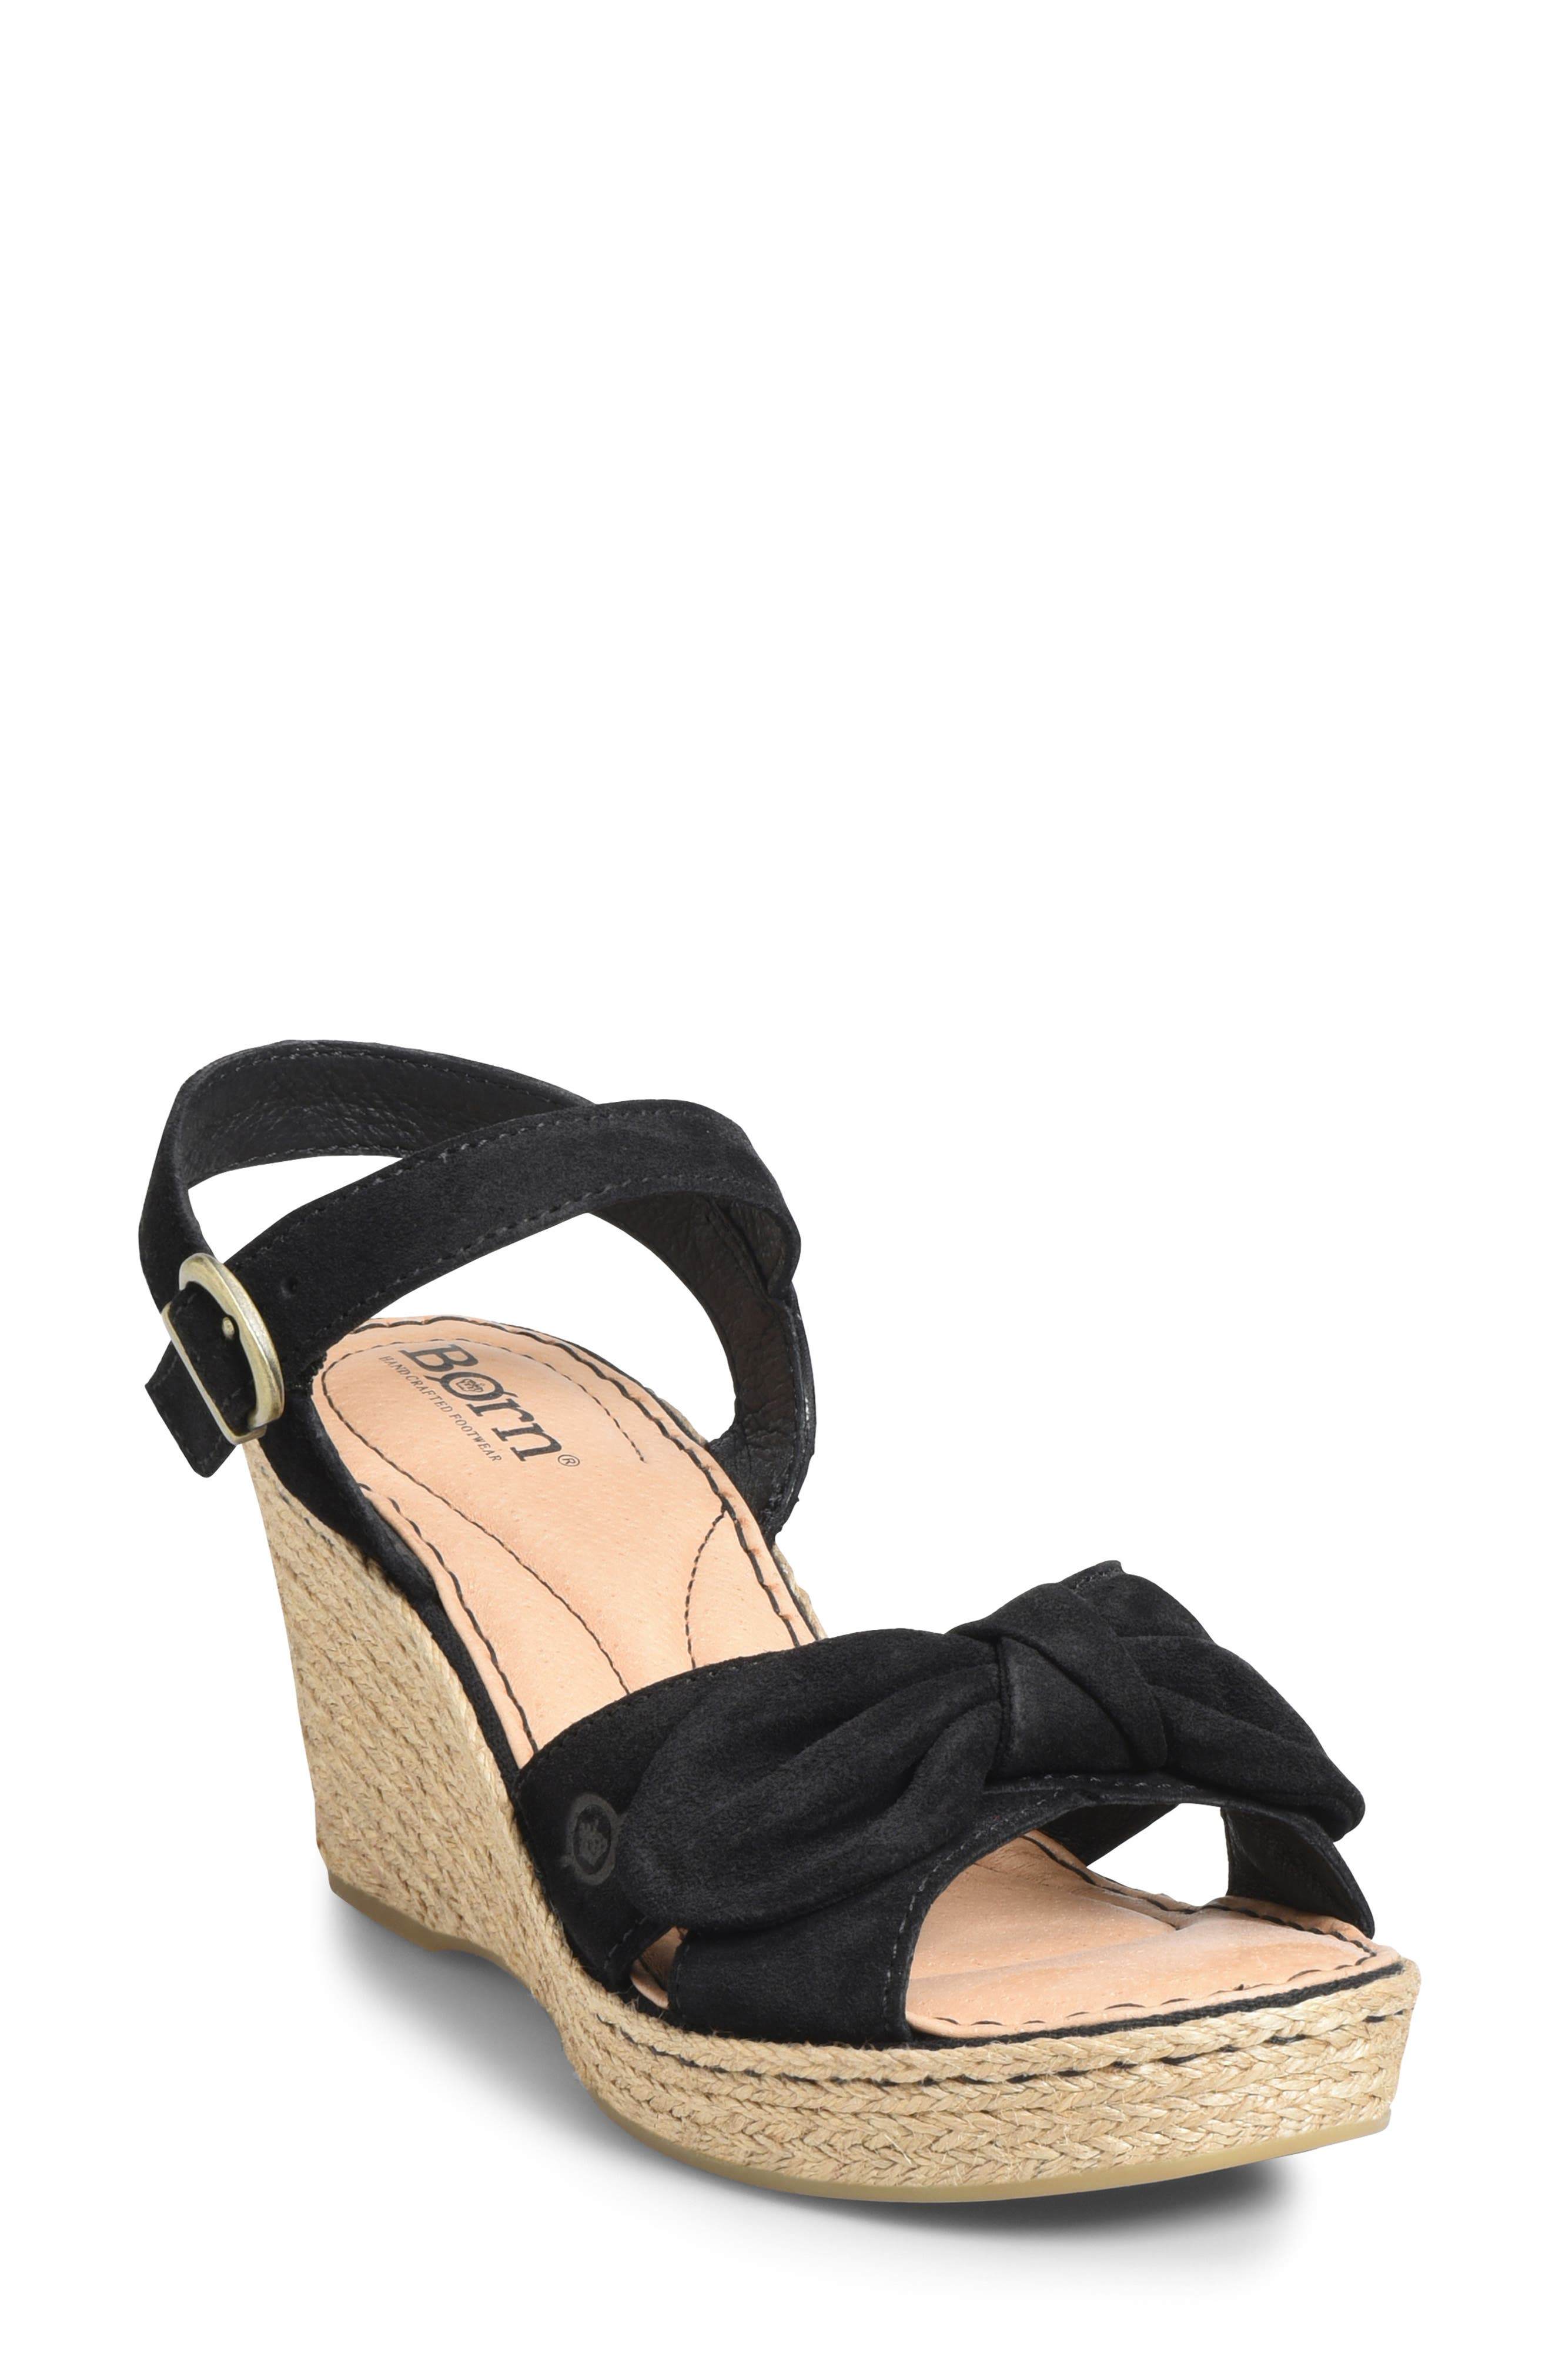 B?rn Monticello Knotted Wedge Sandal, Black